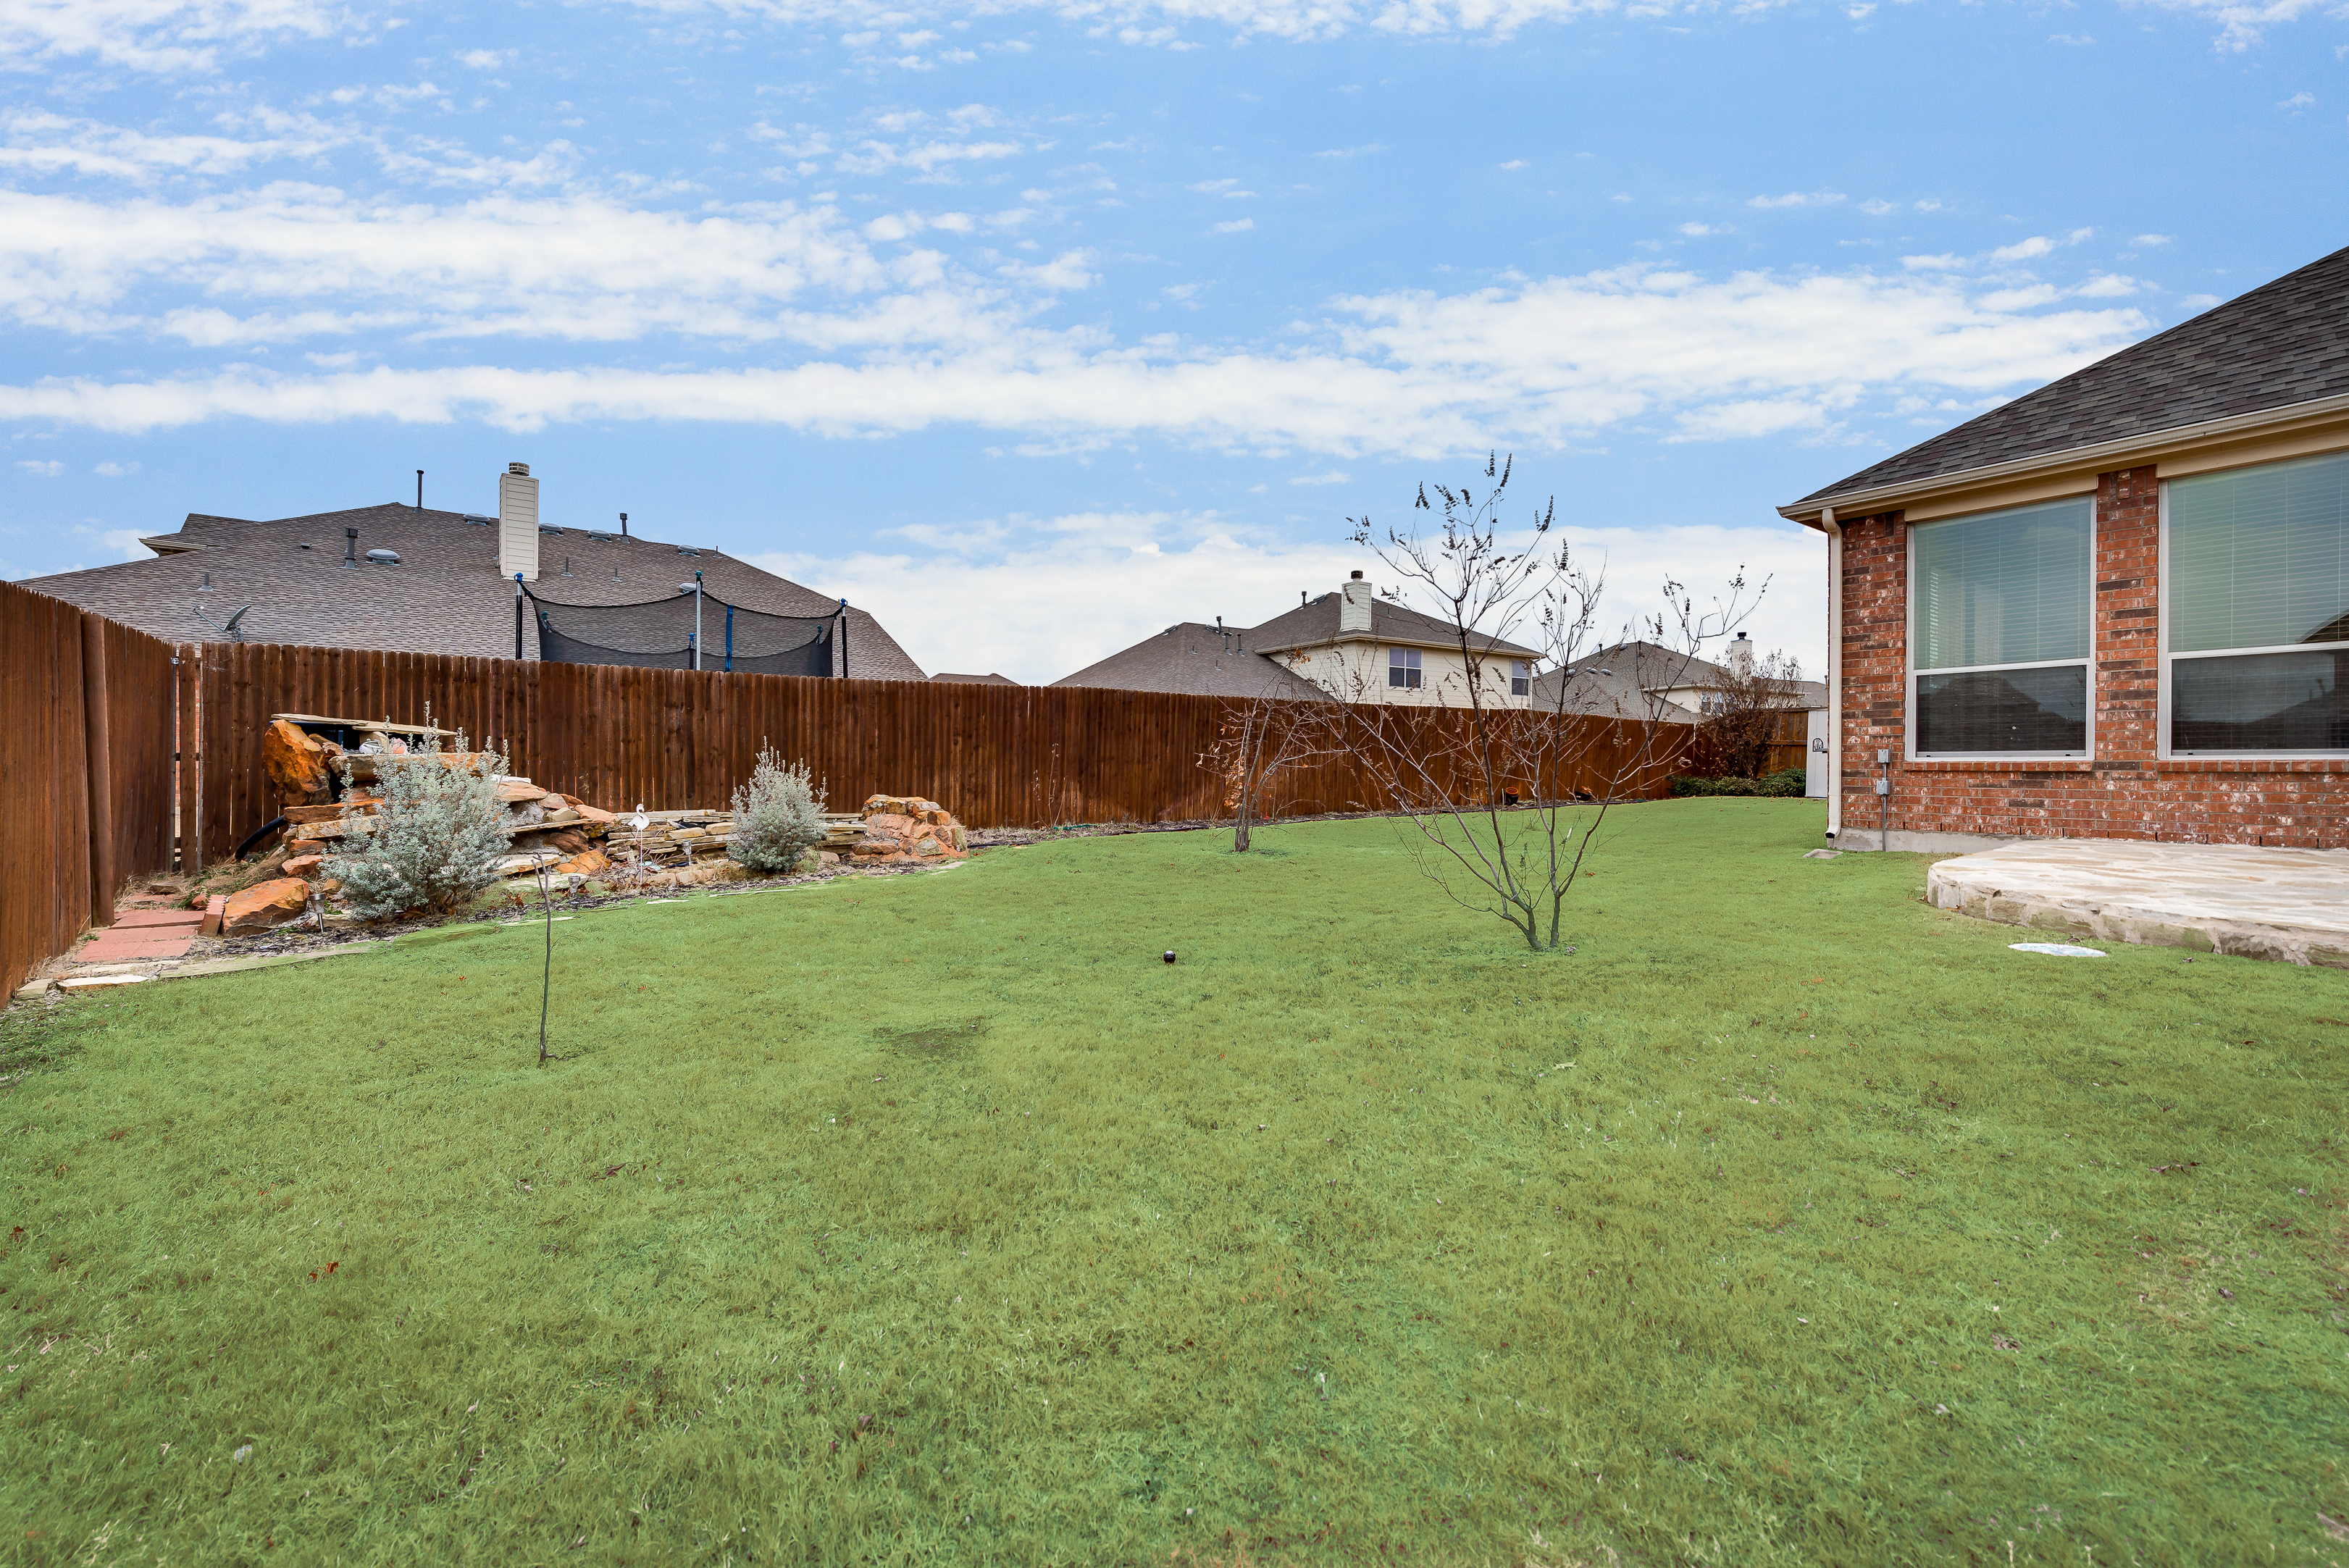 2929 B Landscpaded back yard.jpg